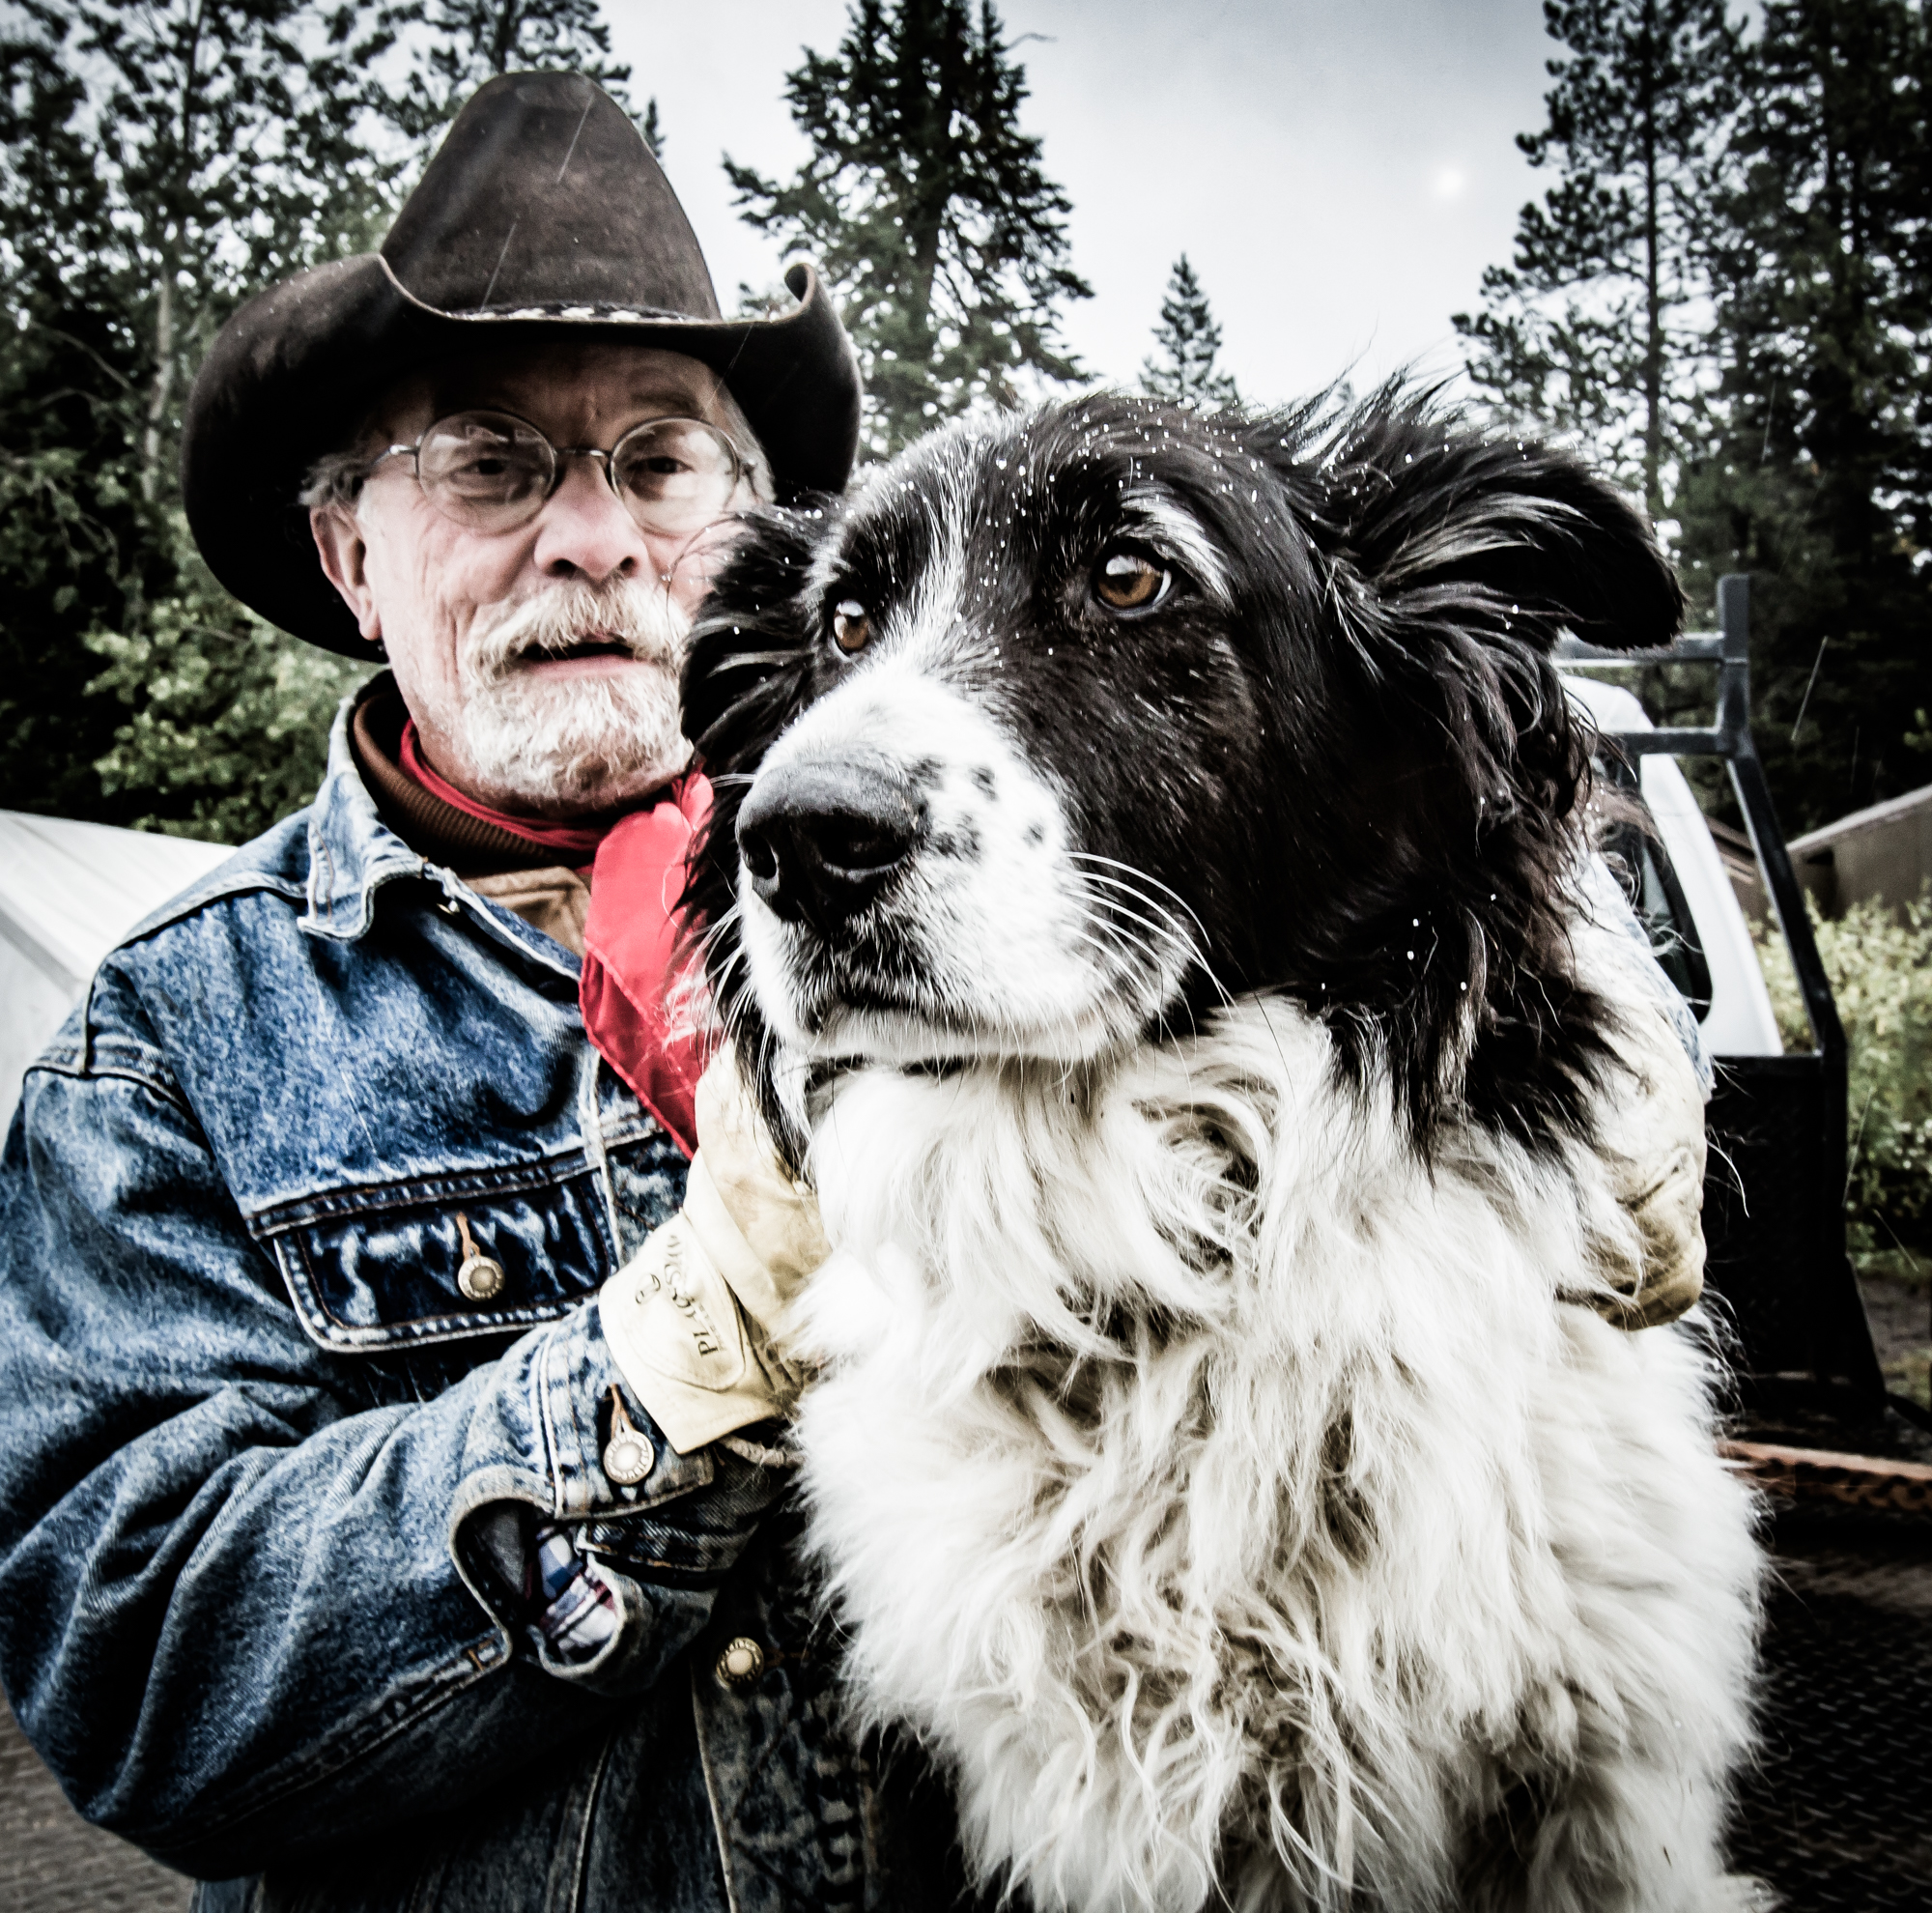 rick-meoli-commercial-photographer-outdoor-animal-lifestyle-repheads-10